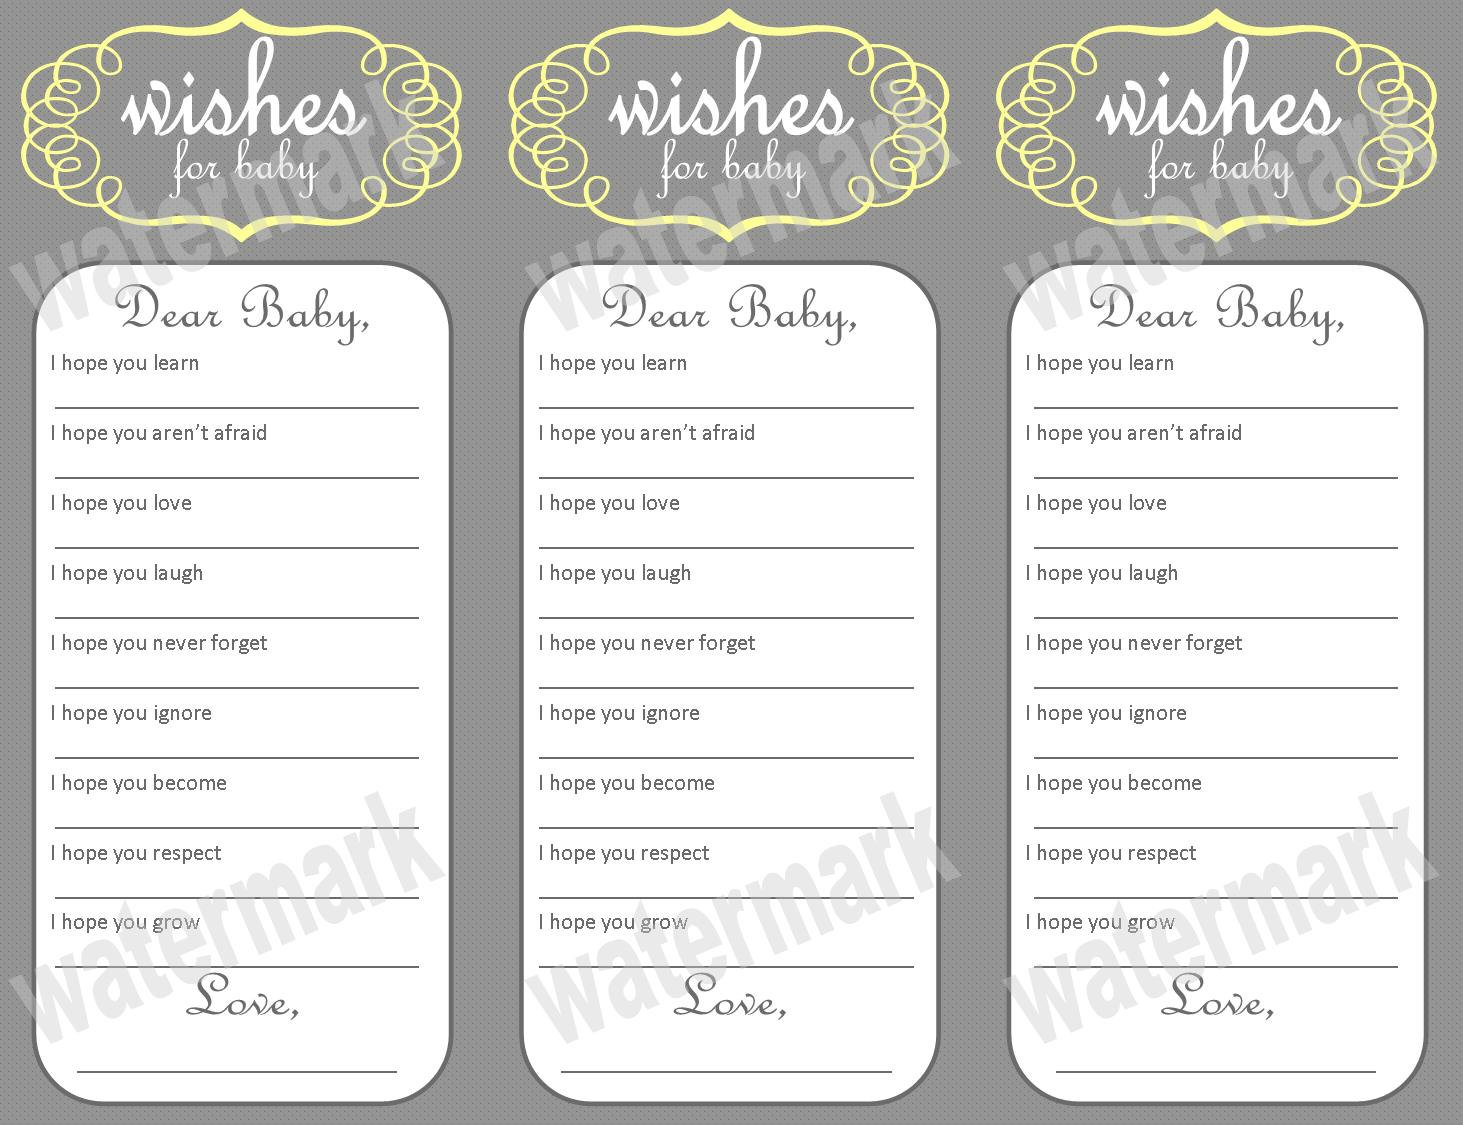 5 best images of free printable baby wishes template for Wishes for baby template printable